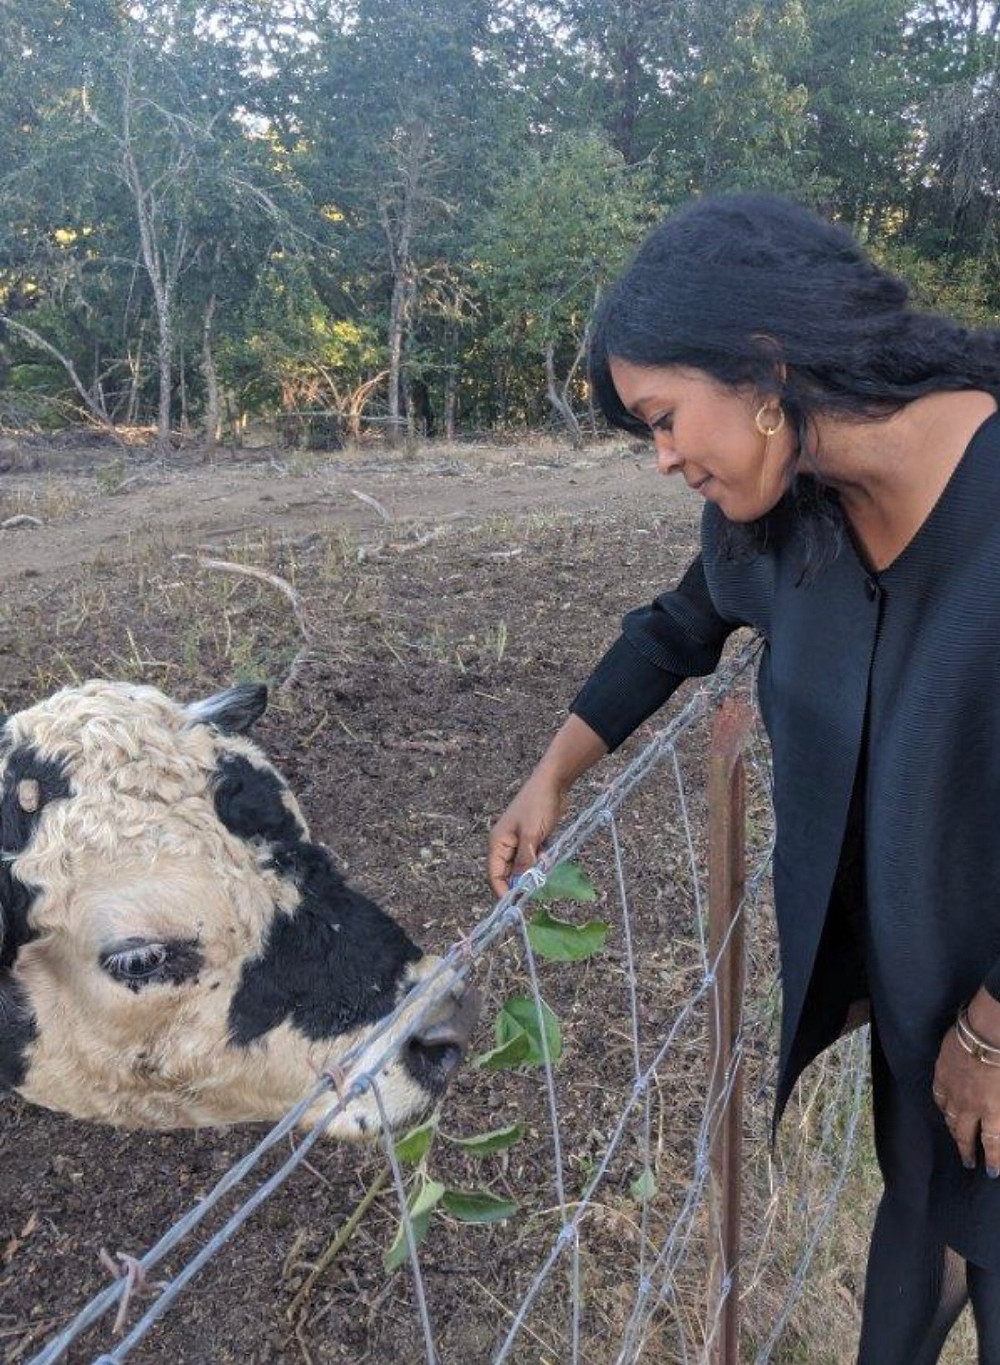 Yvette connecting with a cow by gently extending her hand. They are separated by a wire fence.